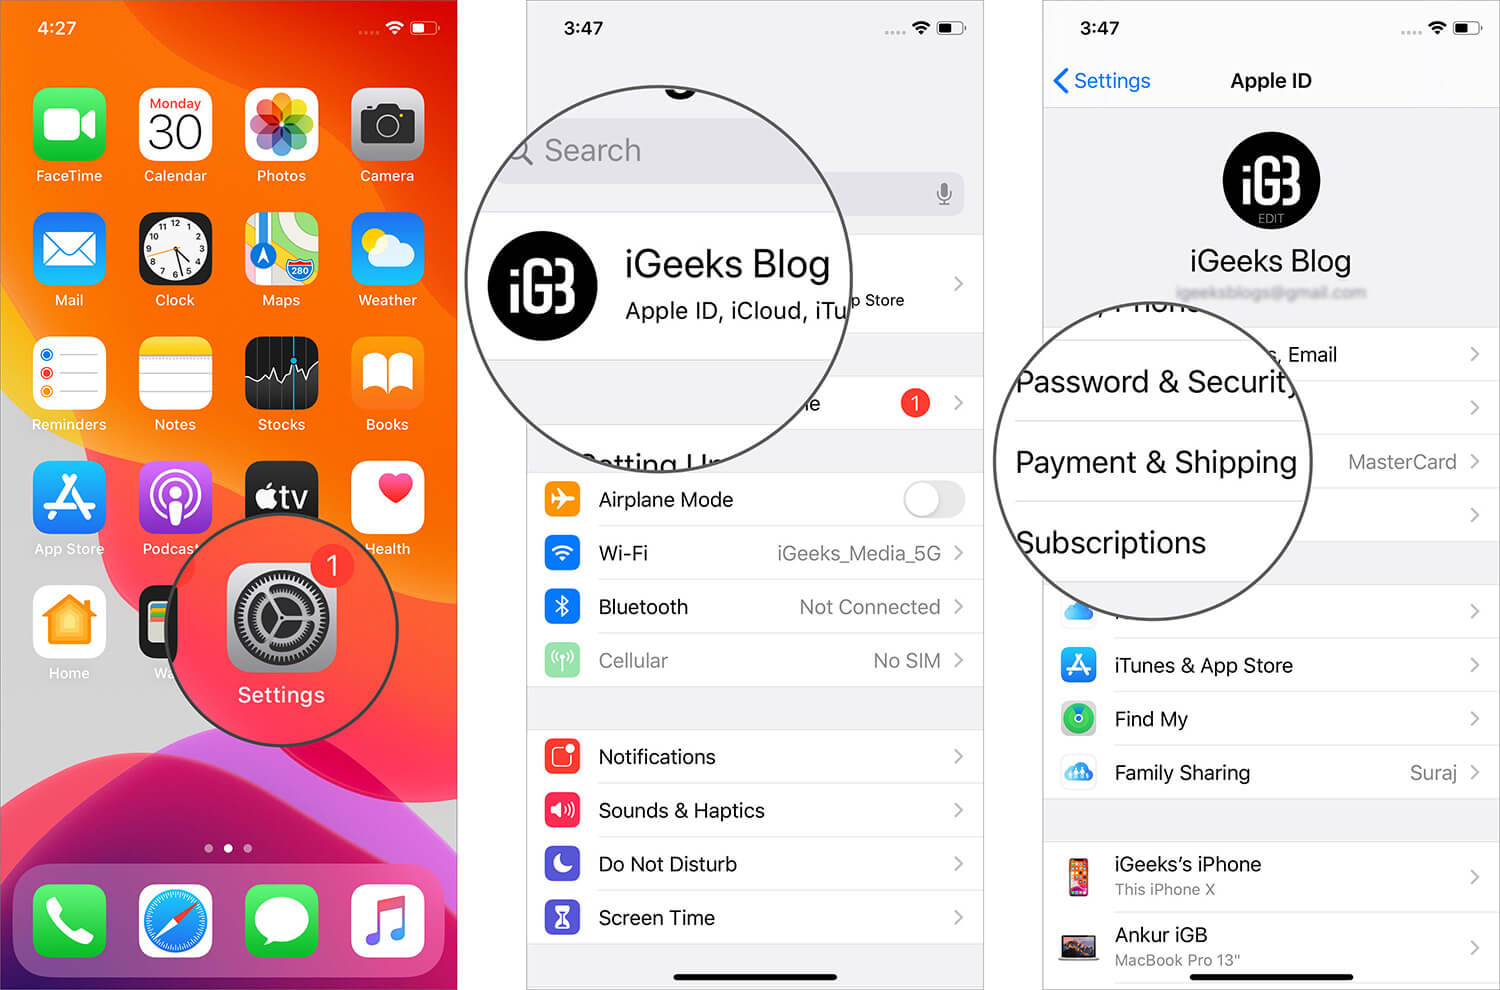 Tap on Payment & Shipping in Profile Settings on iPhone